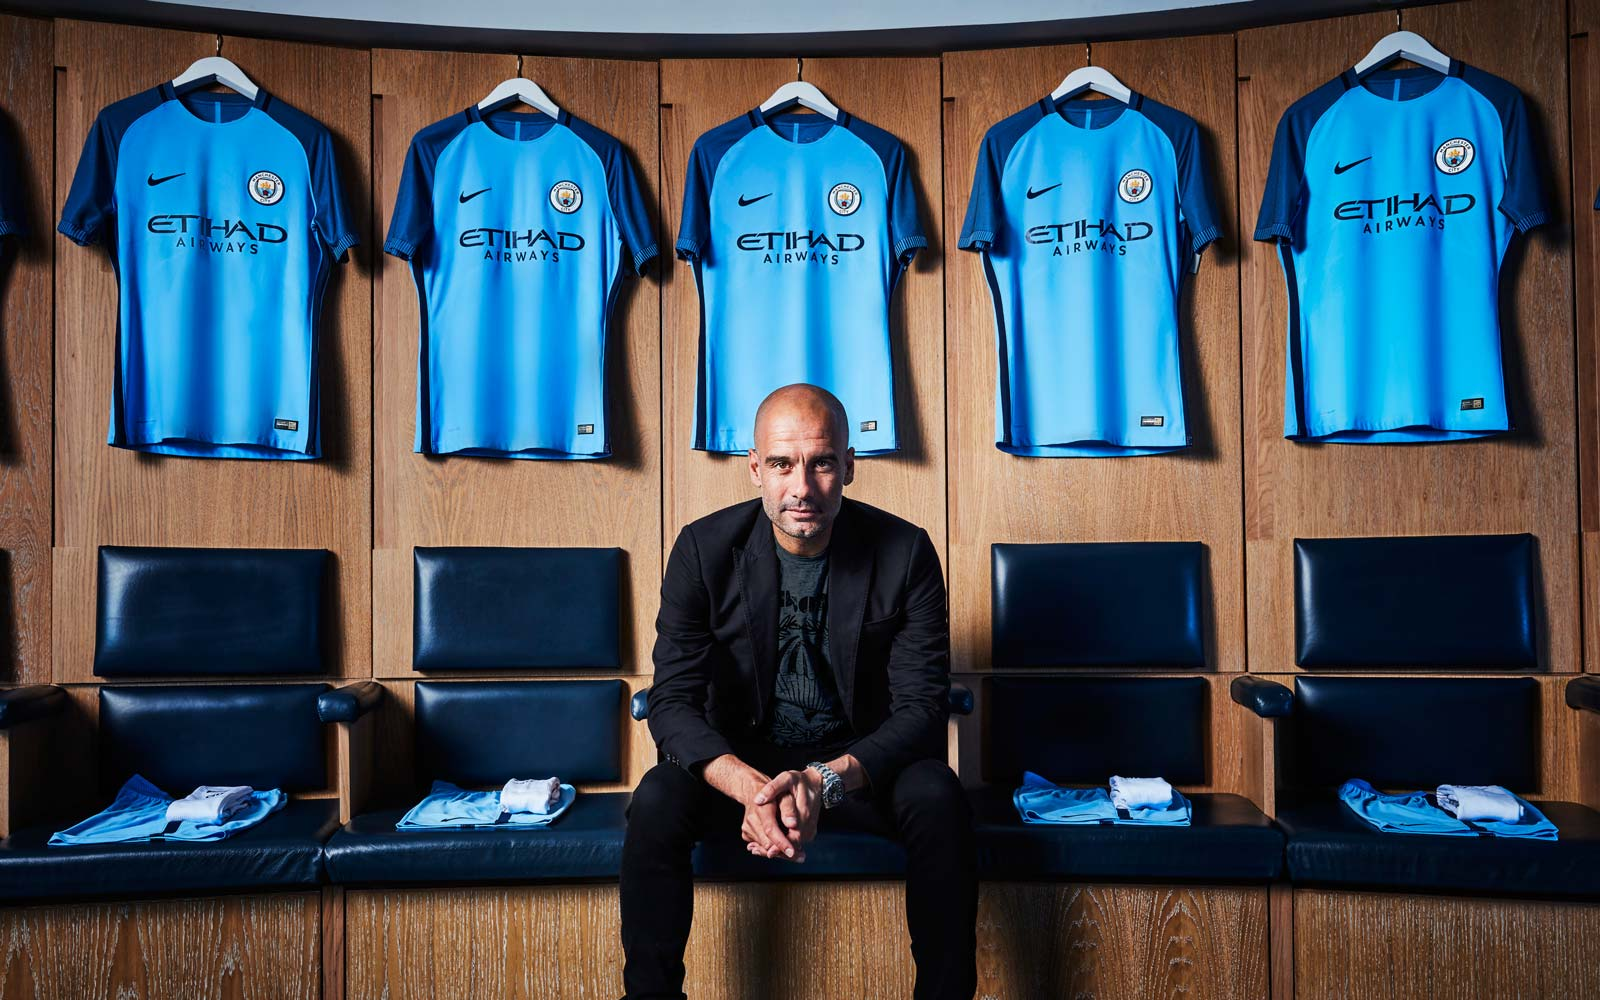 manchester city 16 17 home kit released footy headlines. Black Bedroom Furniture Sets. Home Design Ideas